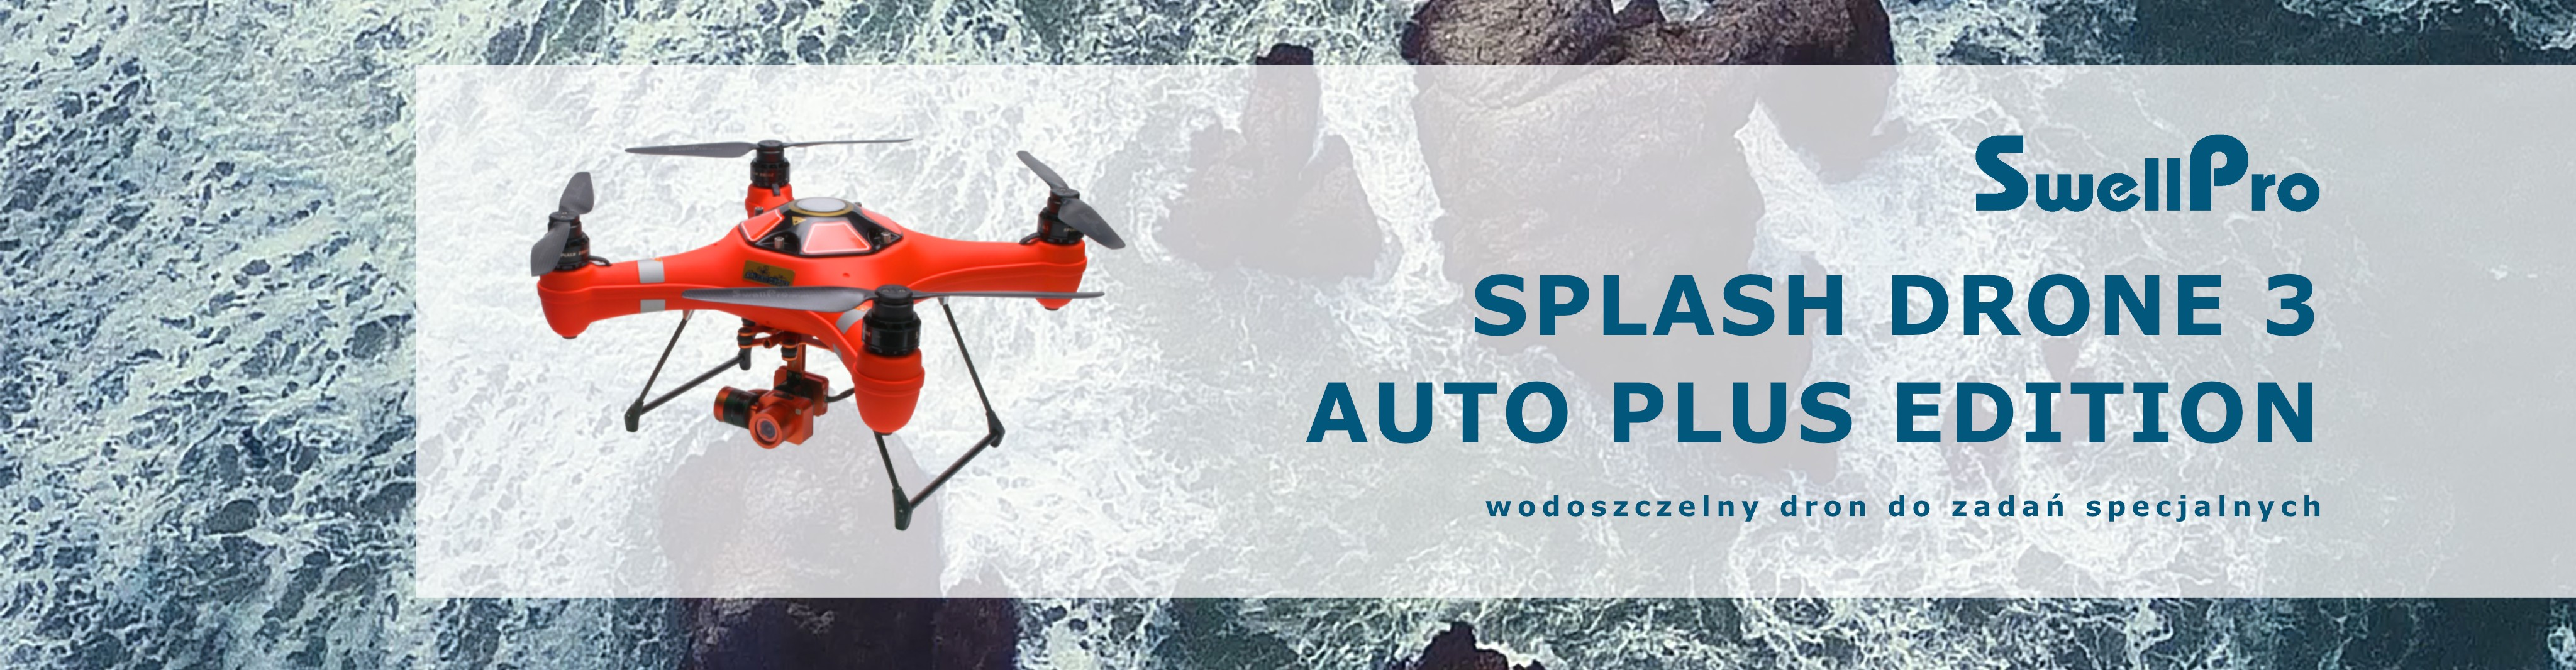 Splash Drone 3 Auto PLUS Edition